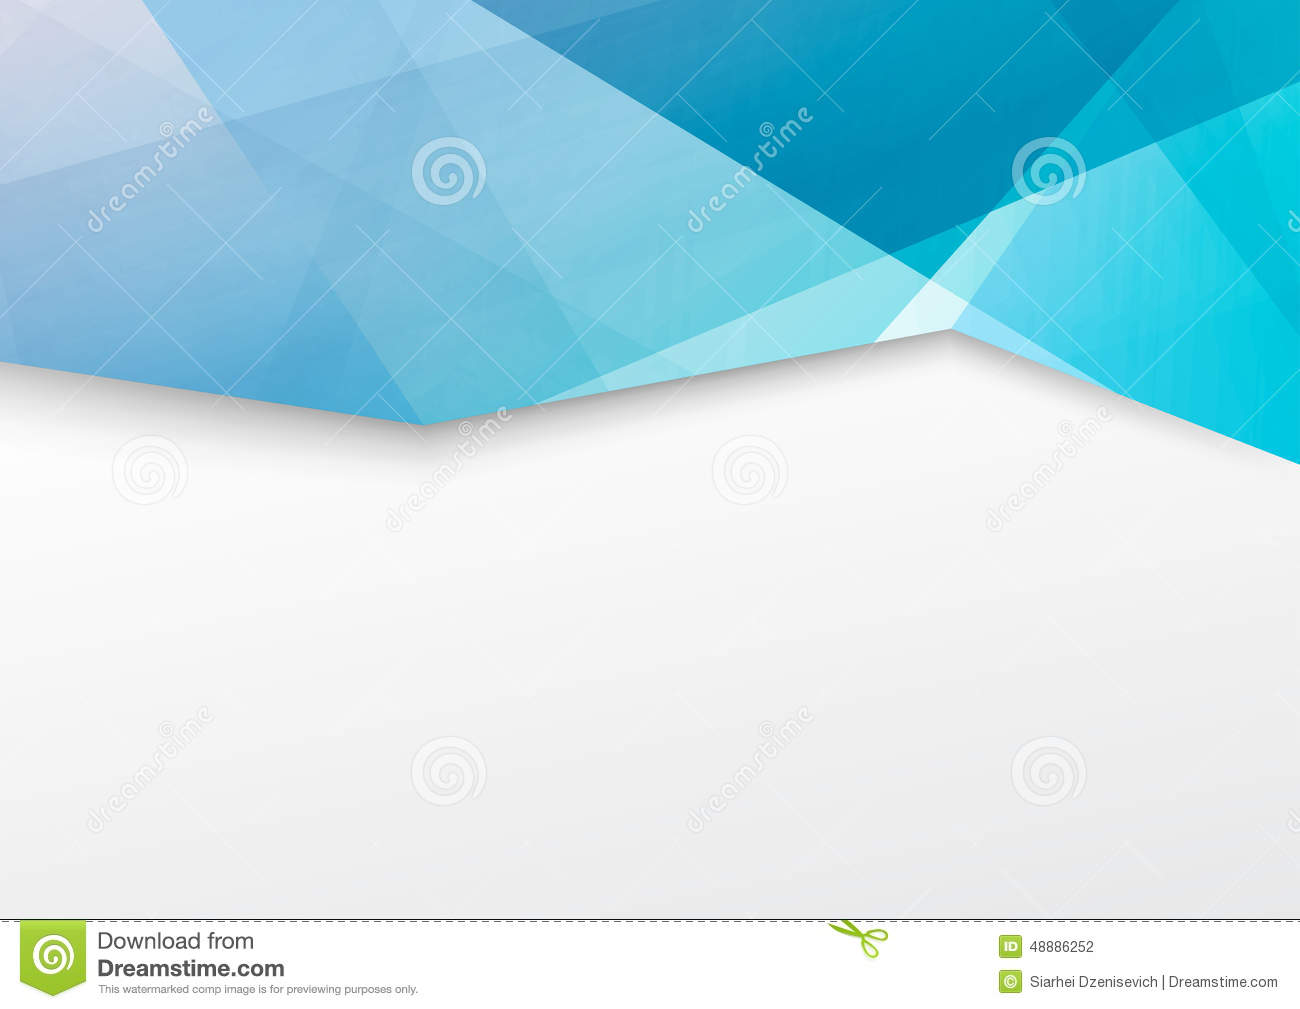 Abstract Blue Crystal Border Brochure Booklet Stock Vector